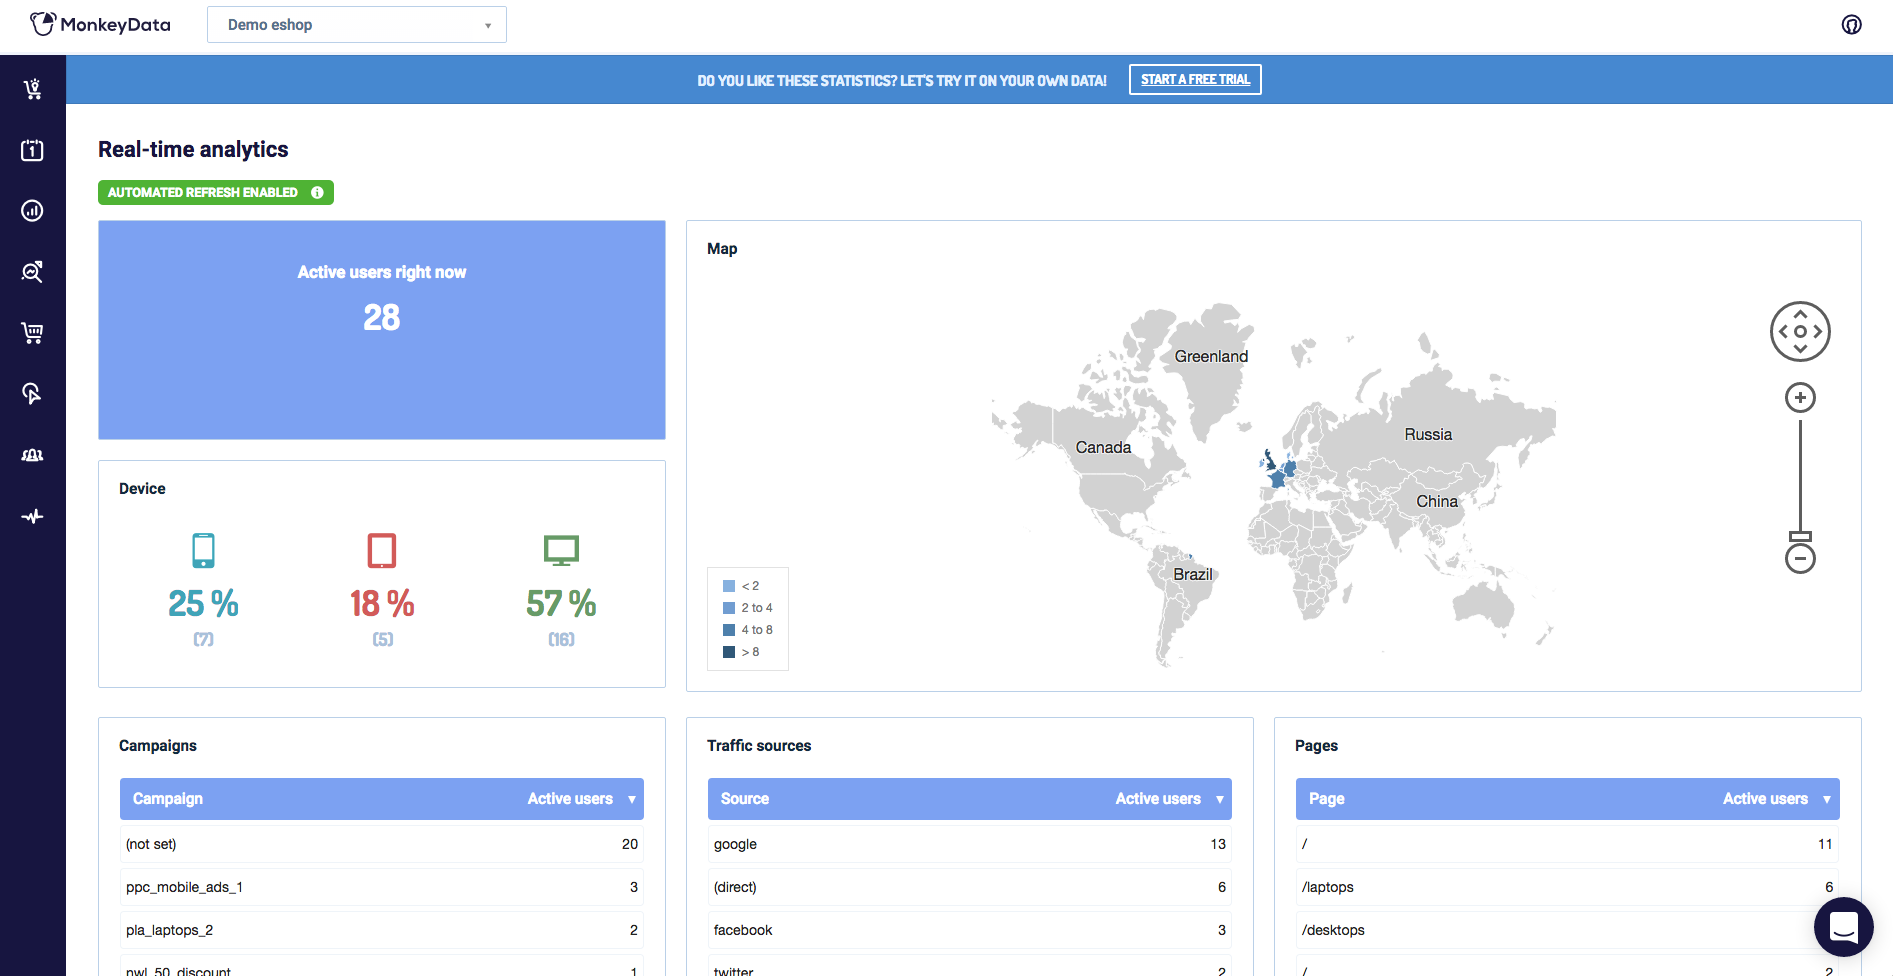 Real-time analytics provide information on currently active users, traffic sources, and more